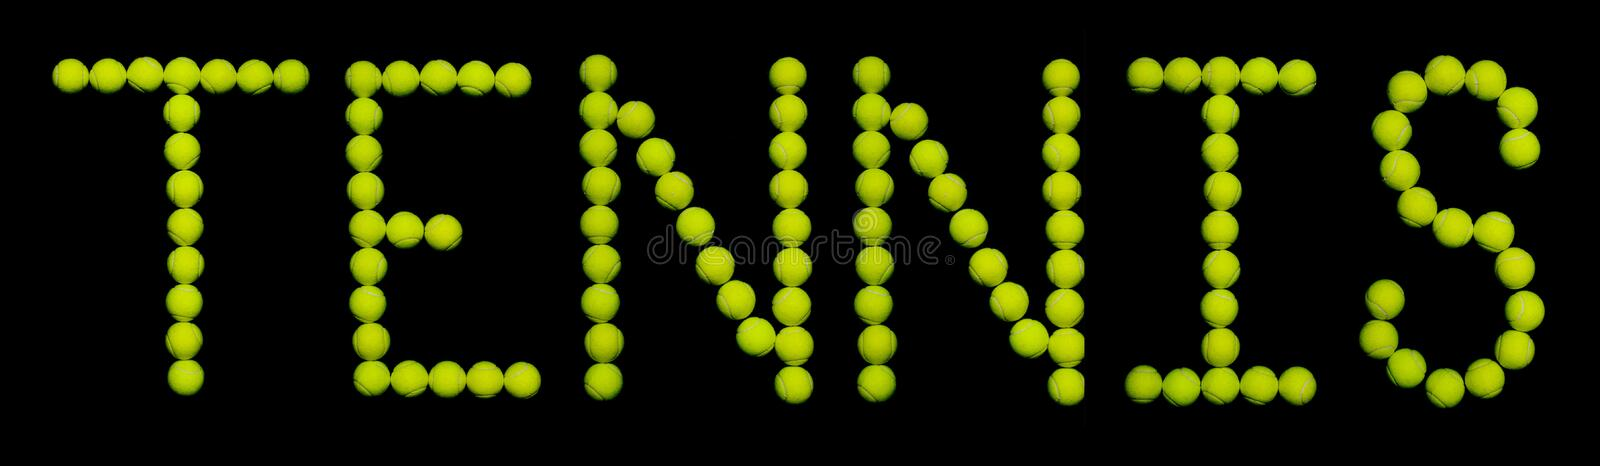 Download Tennis Balls stock image. Image of raquet, yellow, spelling - 207475